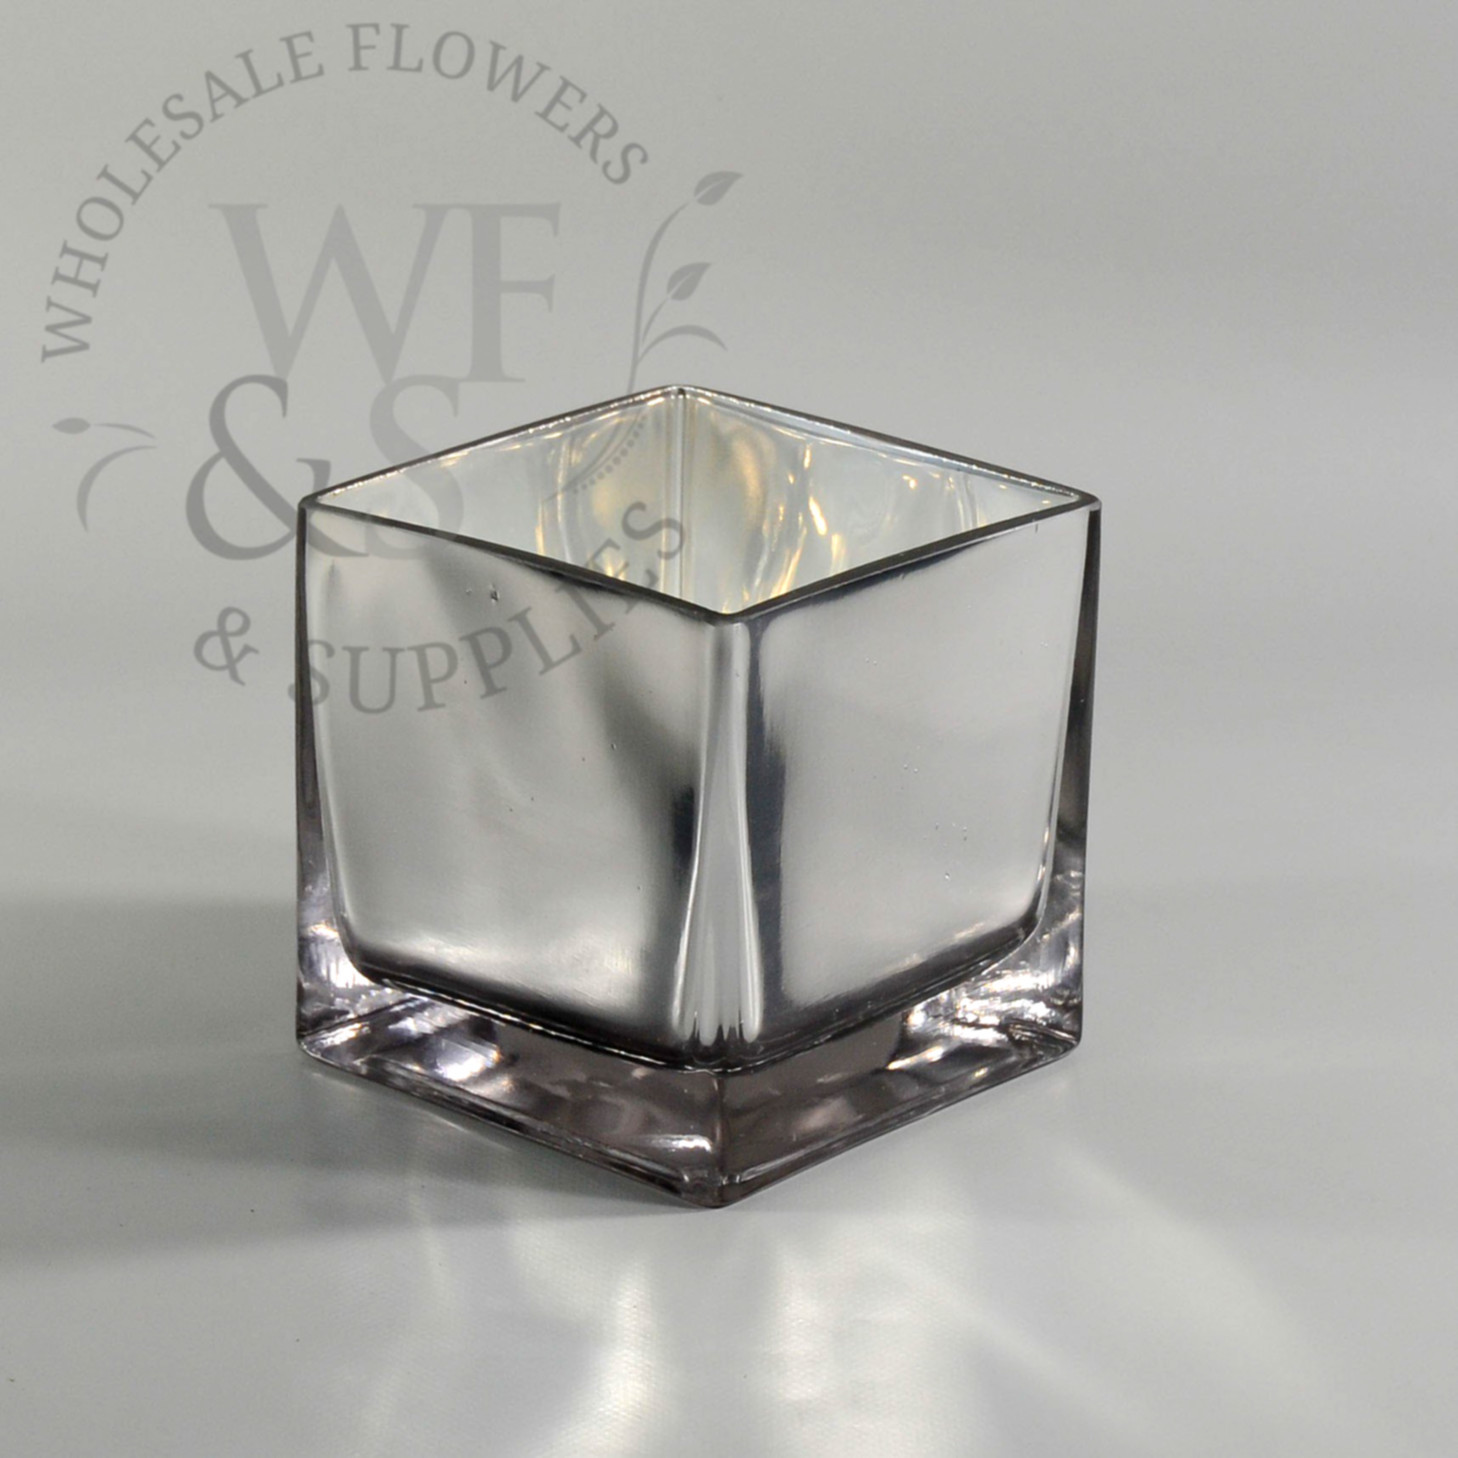 Large Square Clear Glass Vases Of Square Vases 6″ Set Of 12 Abc Glassware Square Glass Vases Pertaining to Square Vases 6″ Set Of 12 Abc Glassware Square Glass Vases Pictures